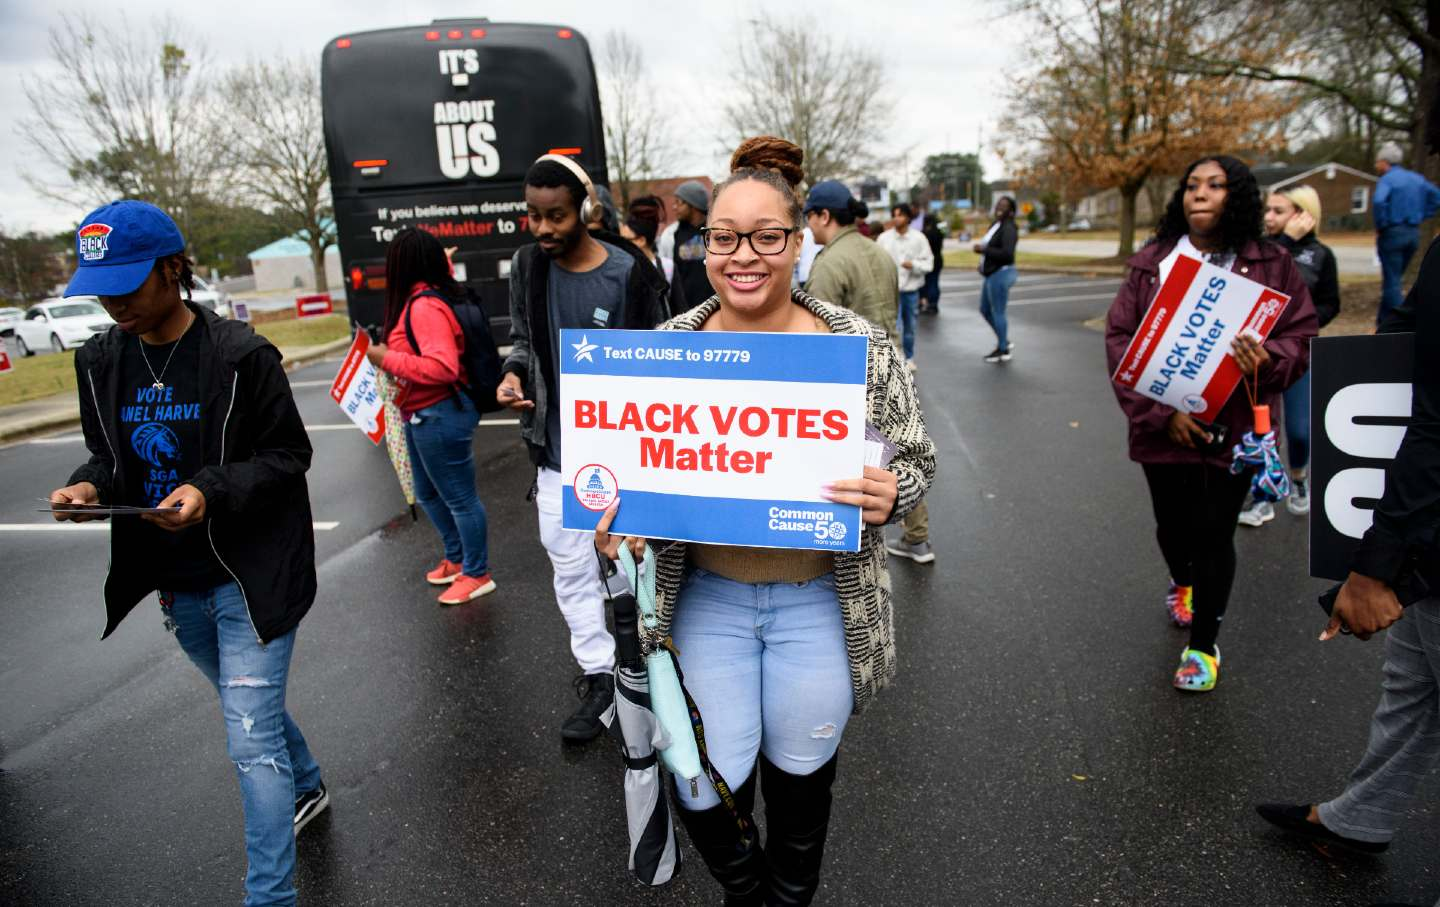 Students promote black voter engagement